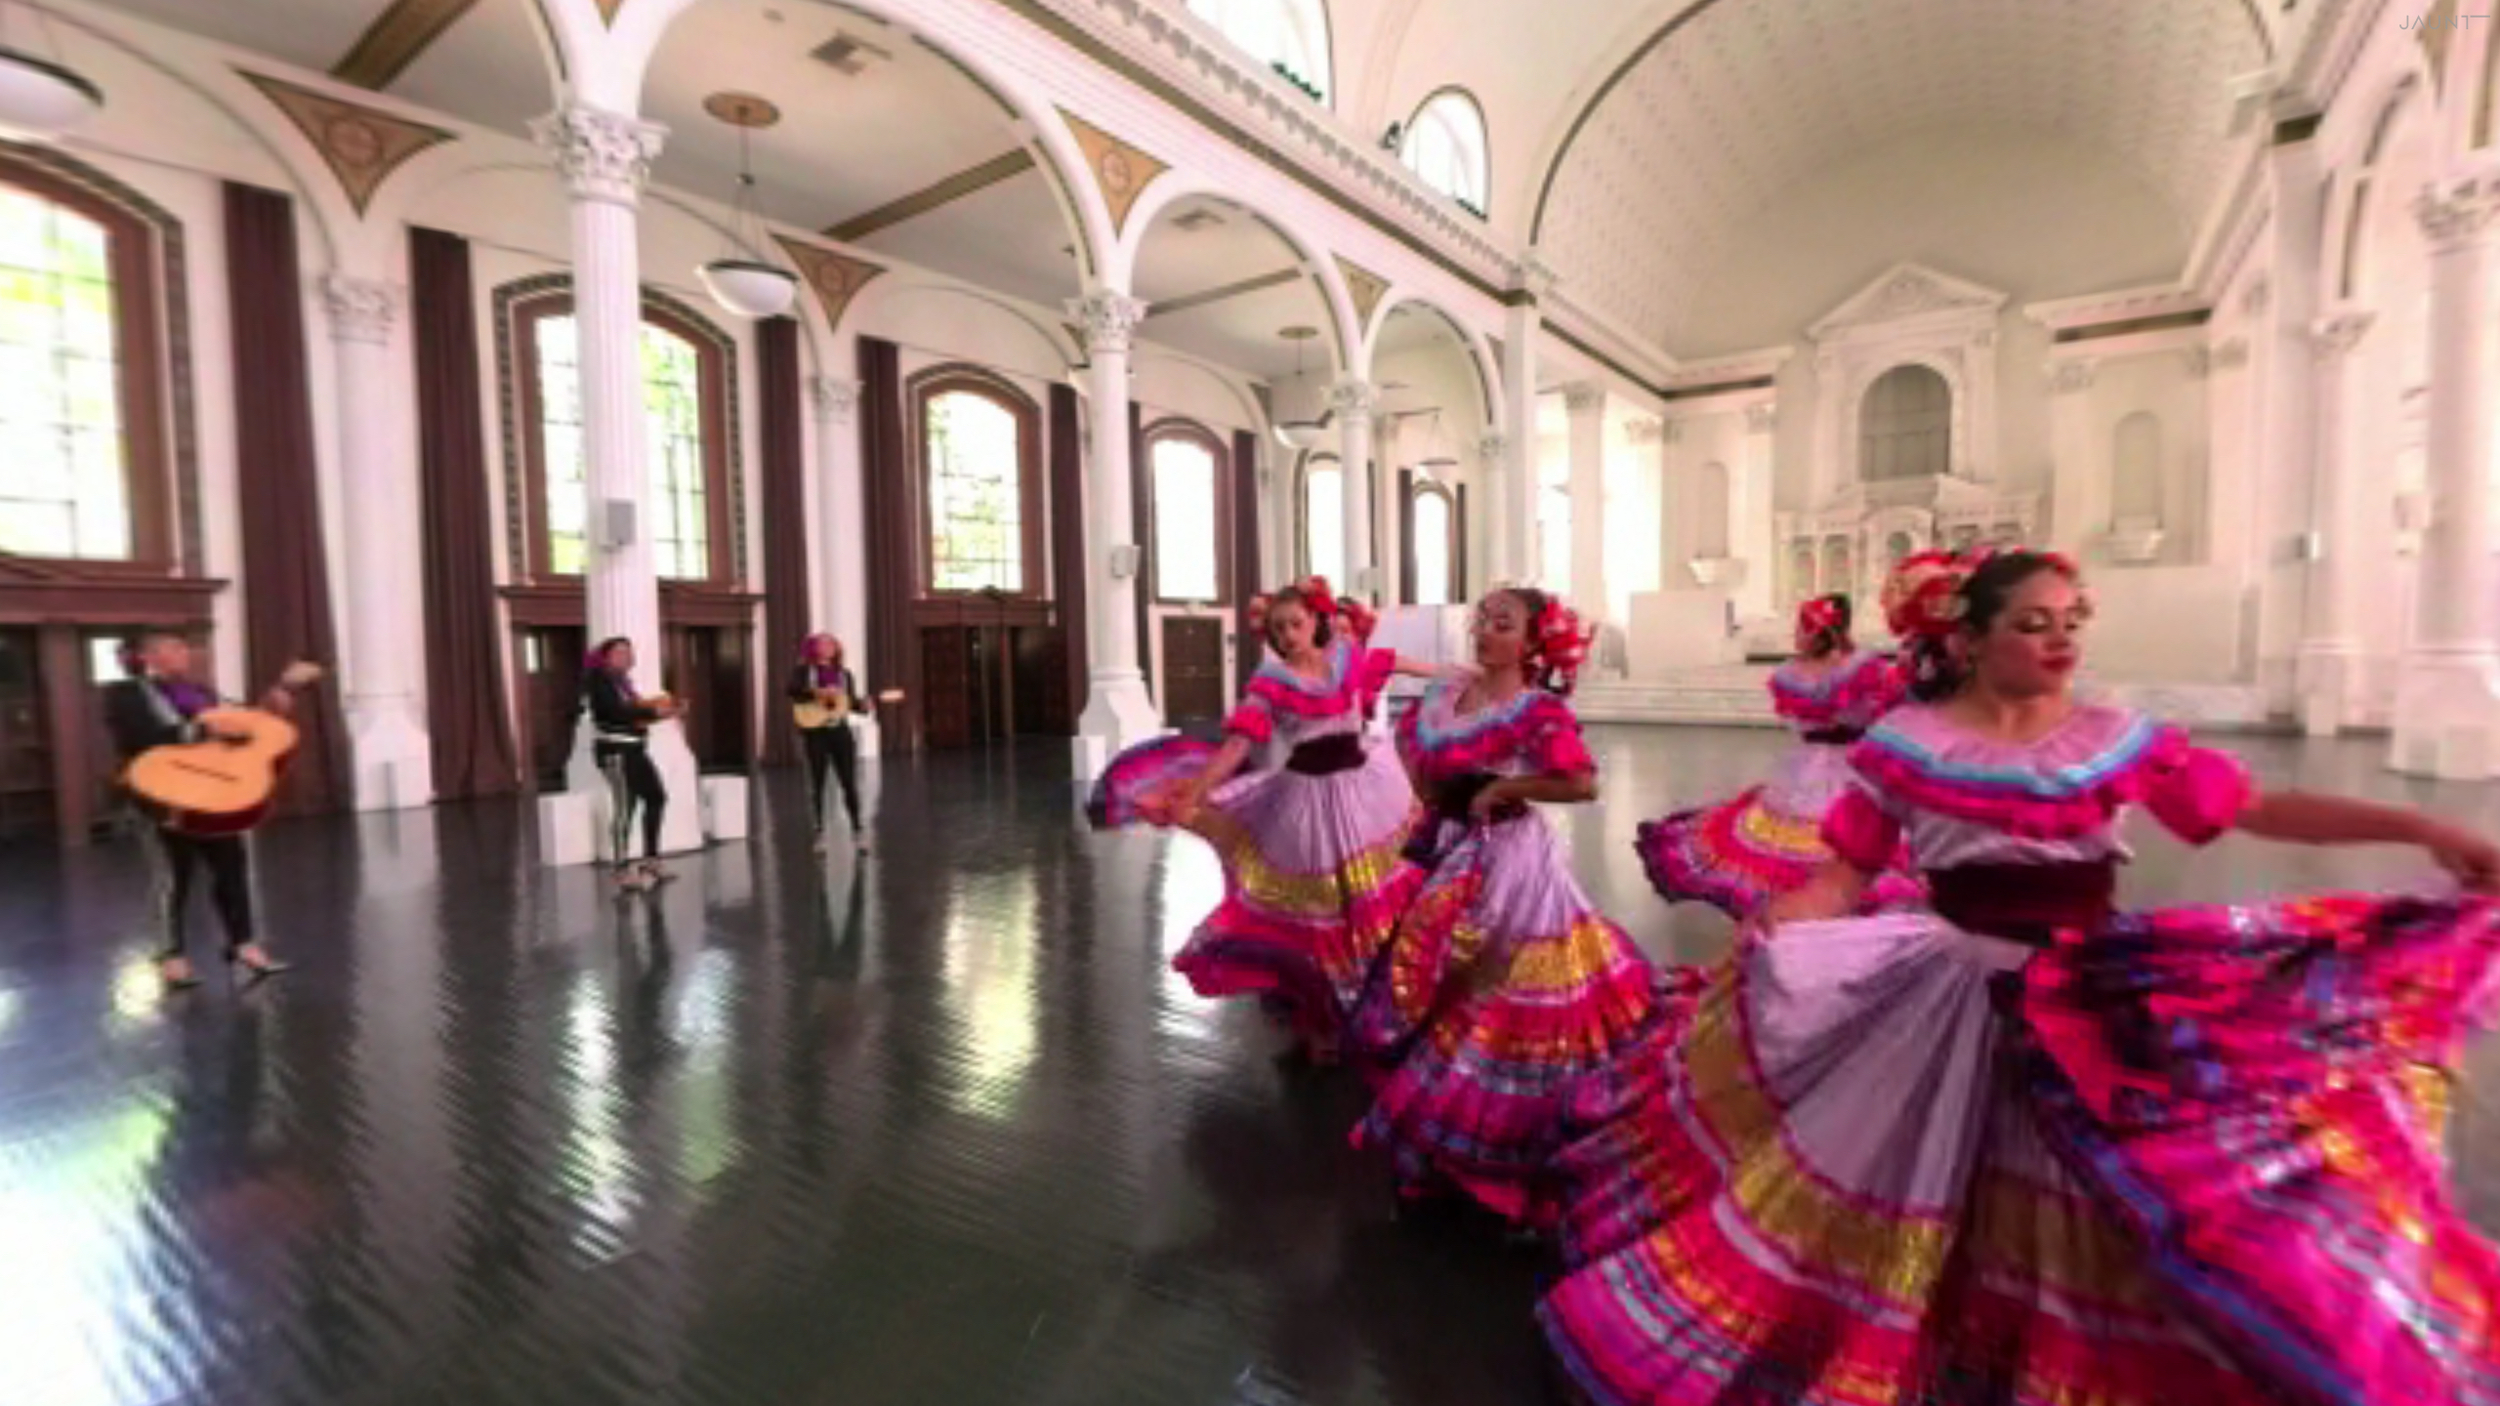 """""""Fuerza Imprevista"""" is a Jaunt VR piece for  Cinco de Mayo  I helped produce in collaboration with VR Playhouse, featuring the Latin Grammy award-winners (and my longtime friends)Mariachi Flor de Toloache. My fiancée Catherine Day directed and EPed through Jaunt.Download the full VR experience here:  https://www.jauntvr.com/title/49b325c60e CO- PRODUCER"""